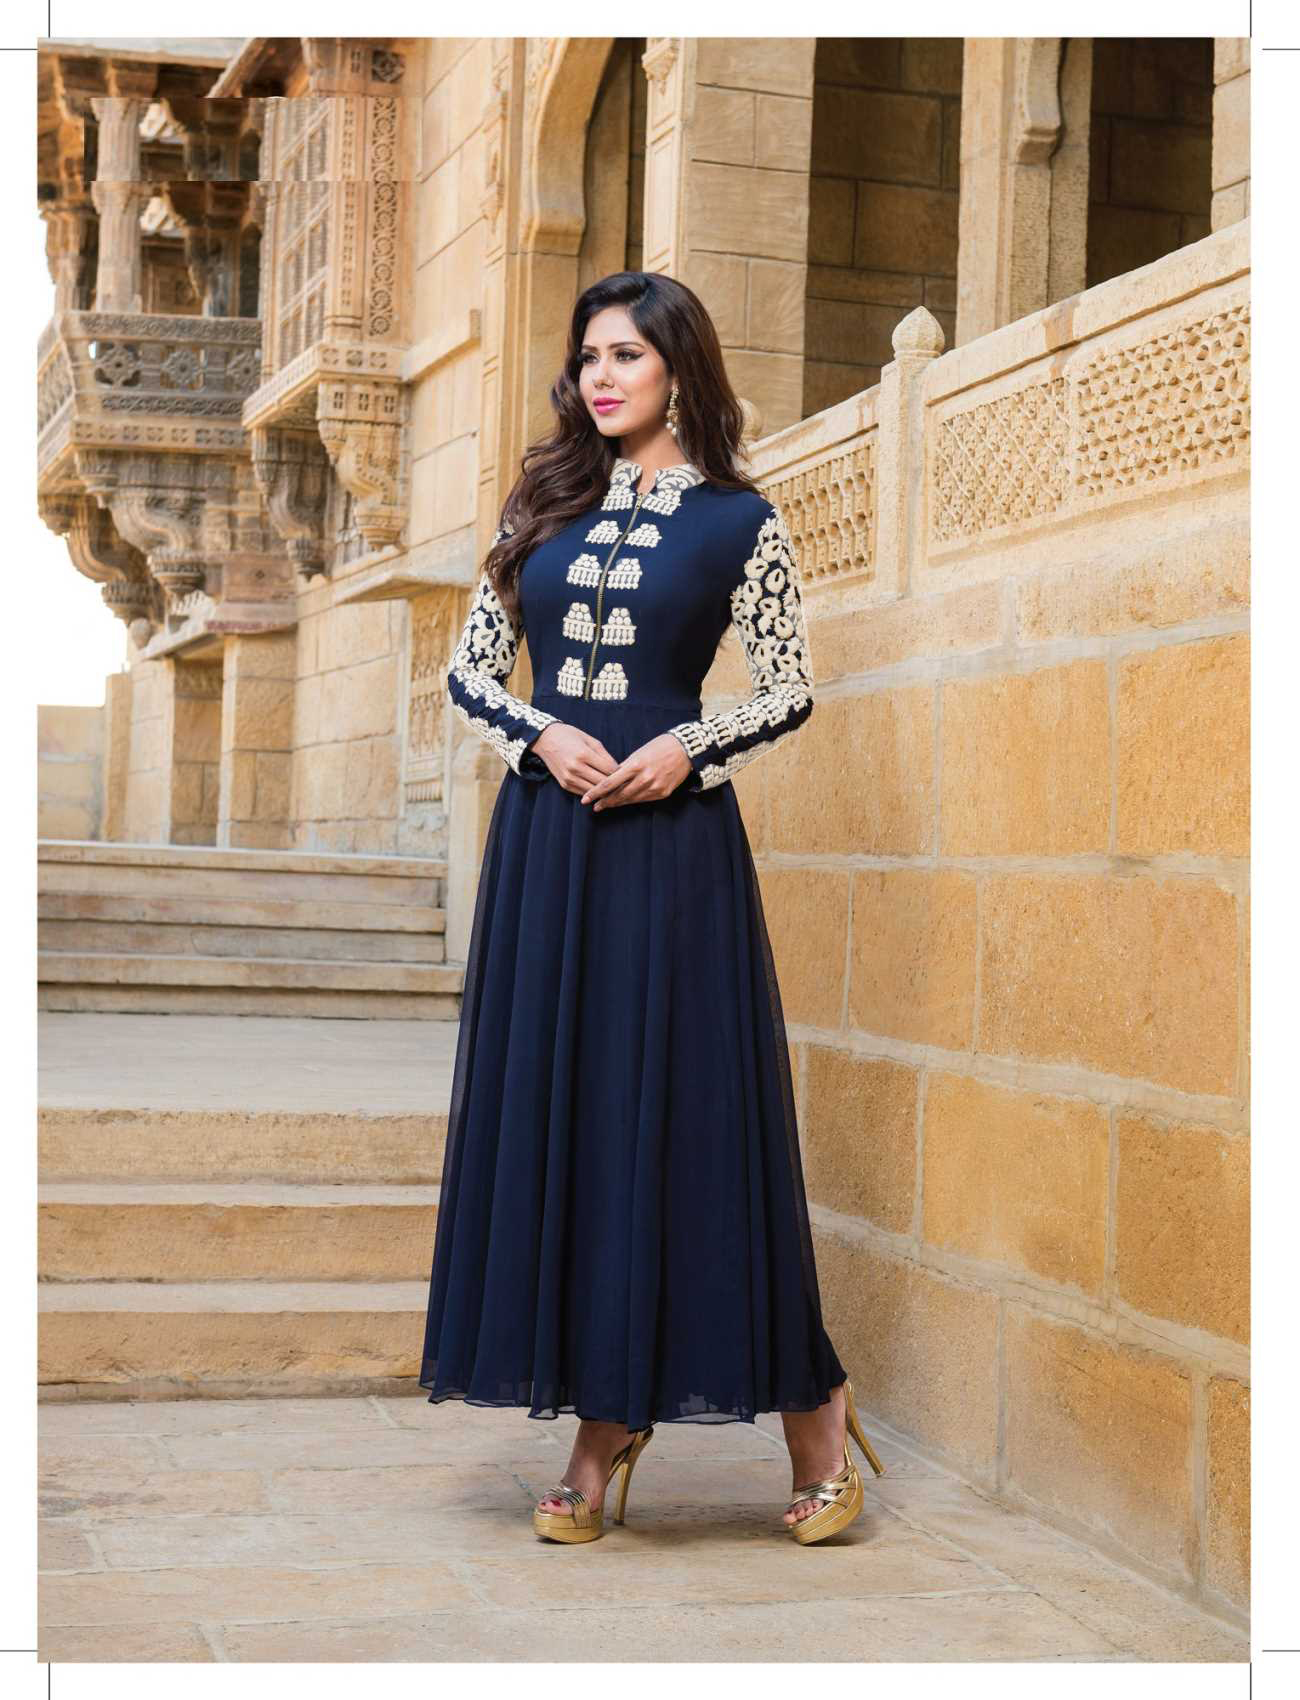 814356b7fba NAVY BLUE   WHITE EMBROIDERED GEORGETTE SEMI-STITCHED ANARKALI SUIT -  Thankar - 504700